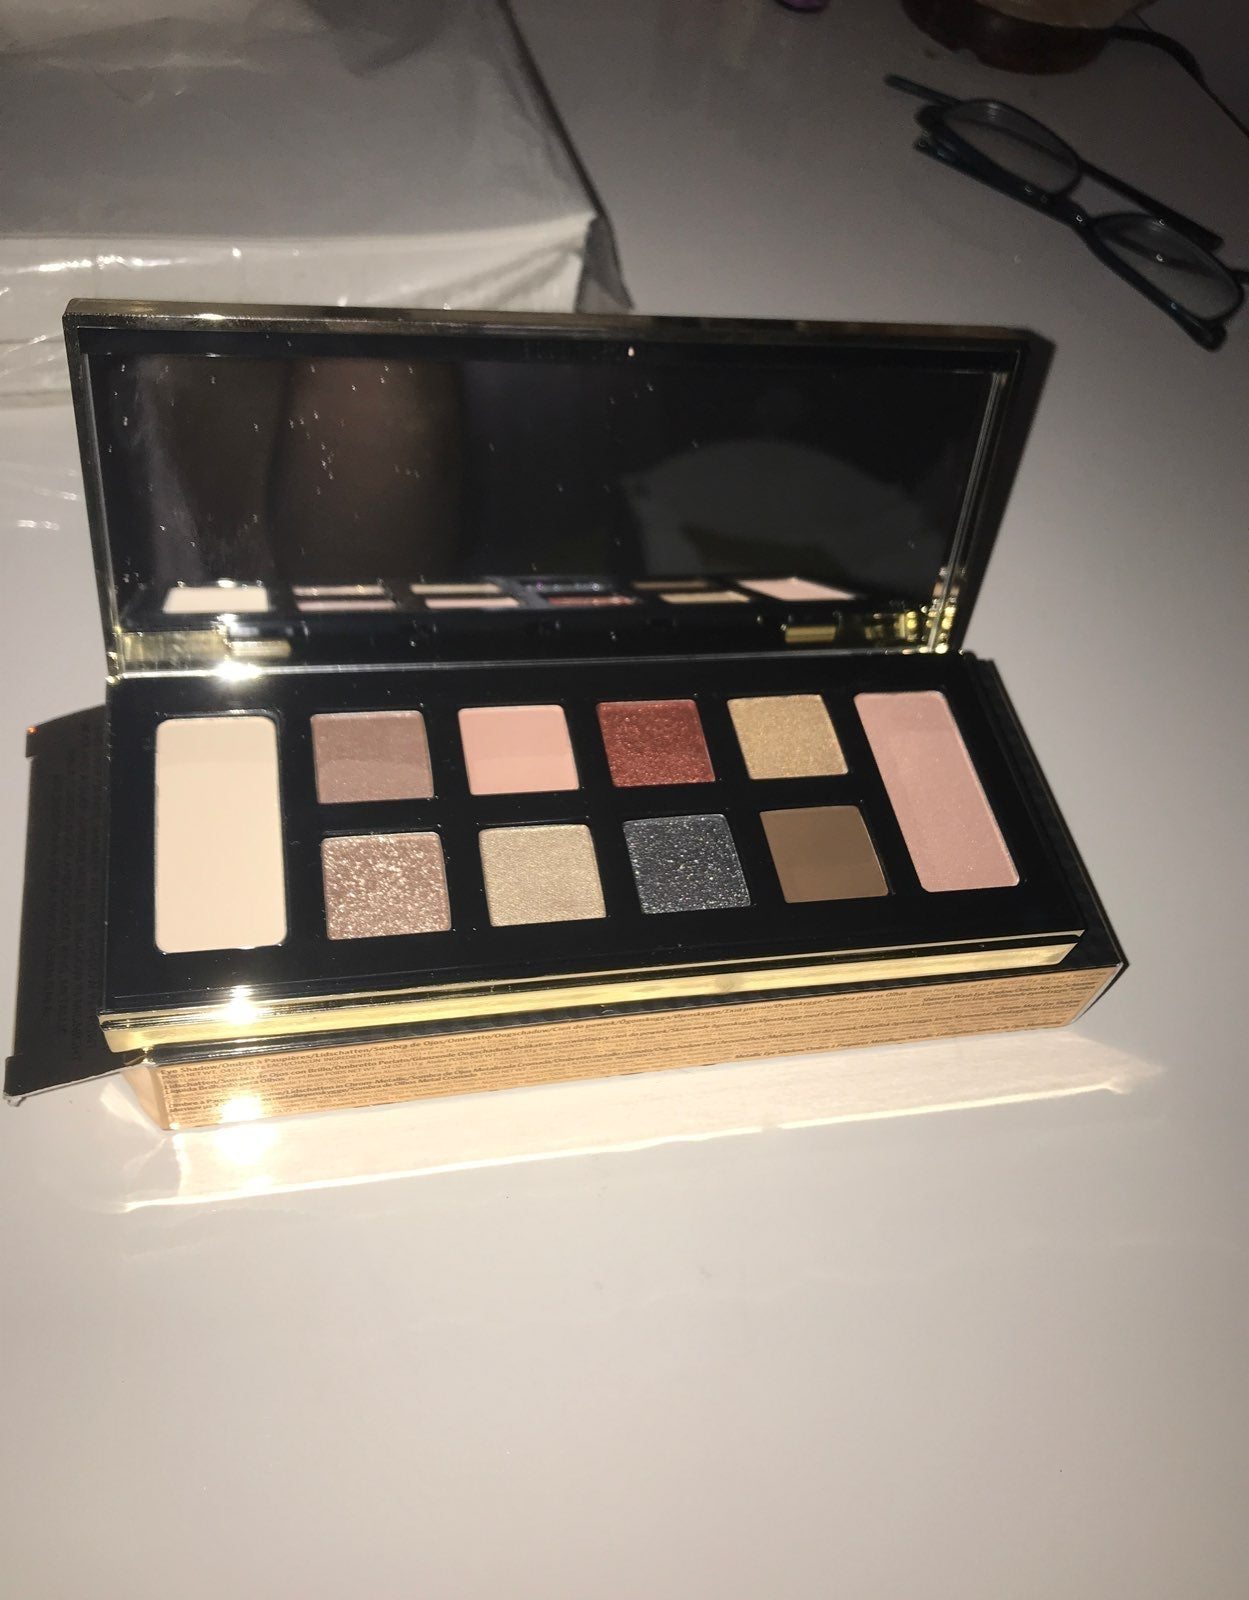 BOBBI BROWN DRAMA COUTURE PALETTE